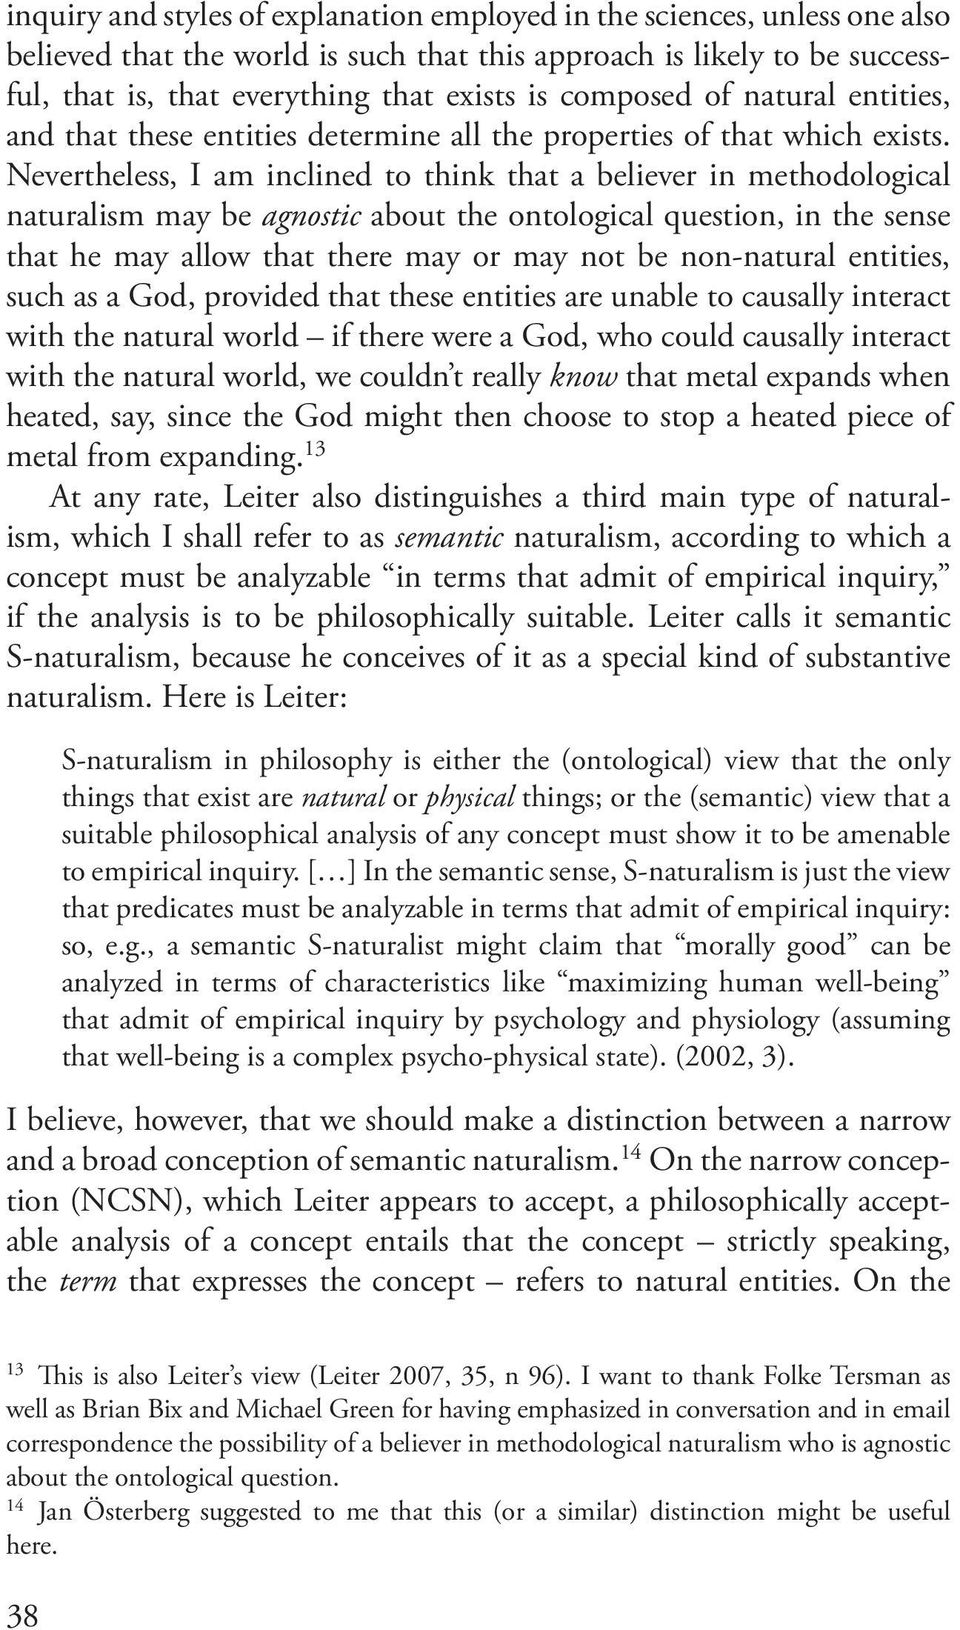 Nevertheless, I am inclined to think that a believer in methodological naturalism may be agnostic about the ontological question, in the sense that he may allow that there may or may not be